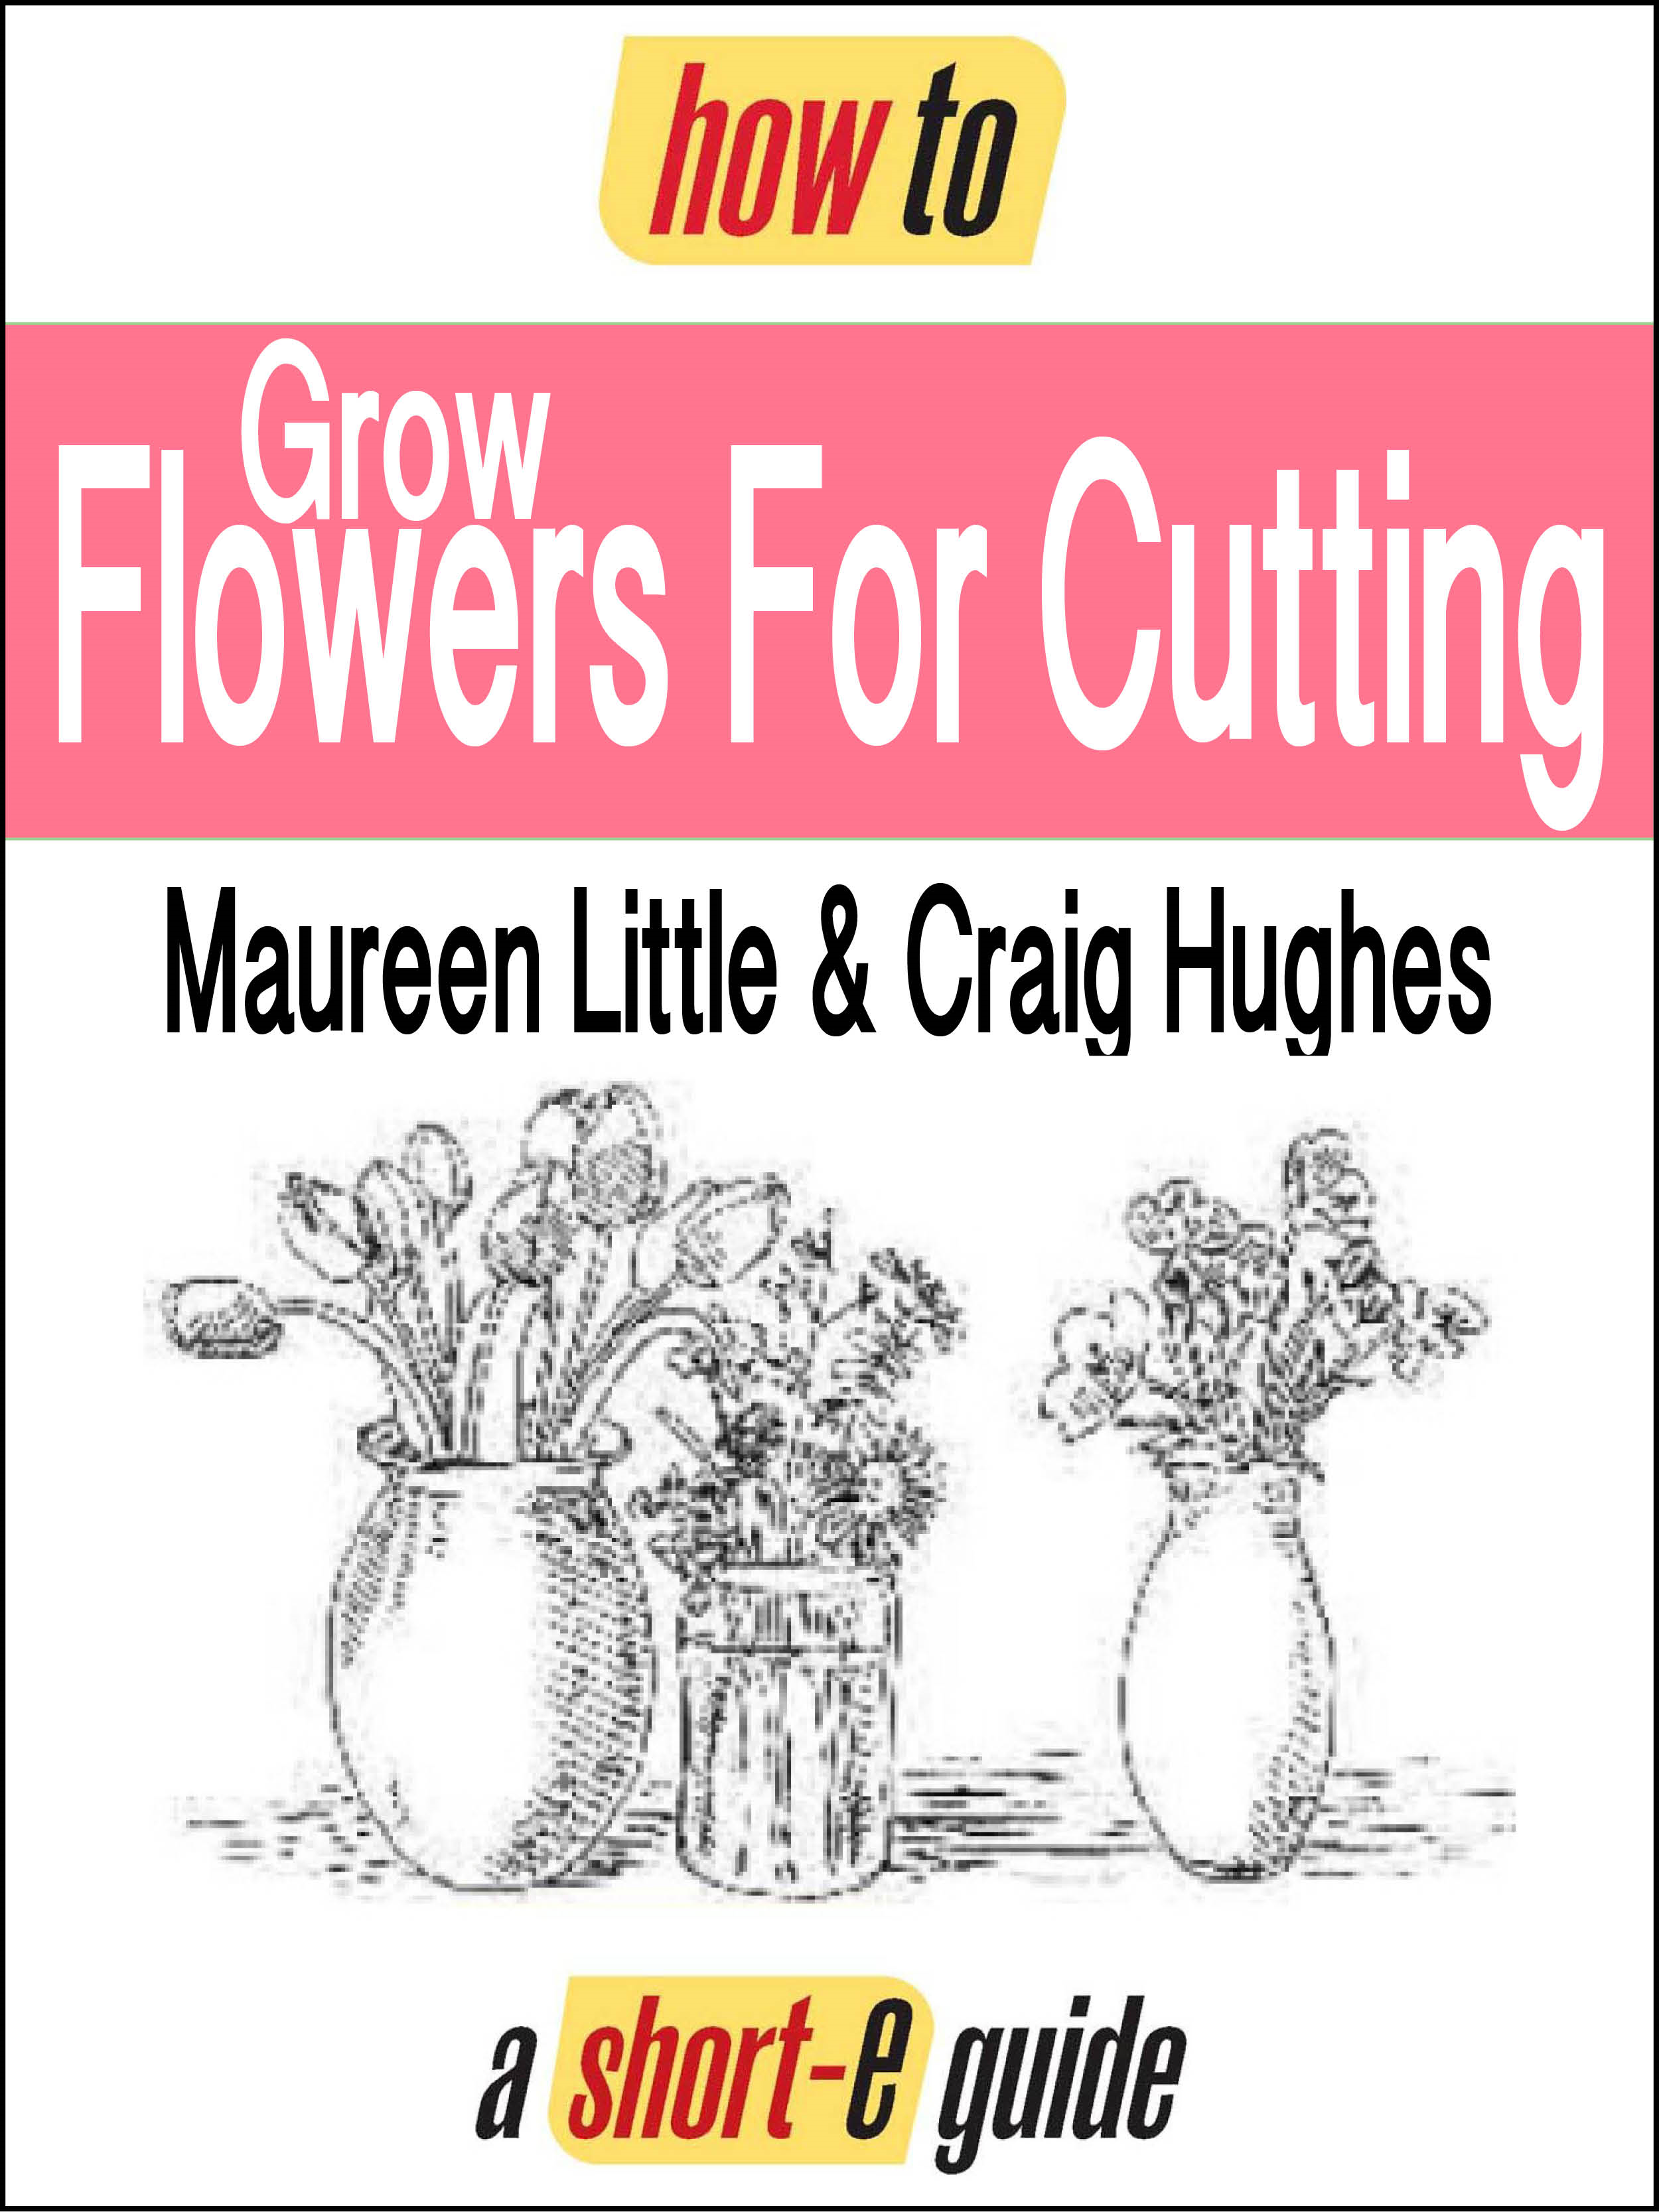 How to Grow Flowers For Cutting (Short-e Guide)